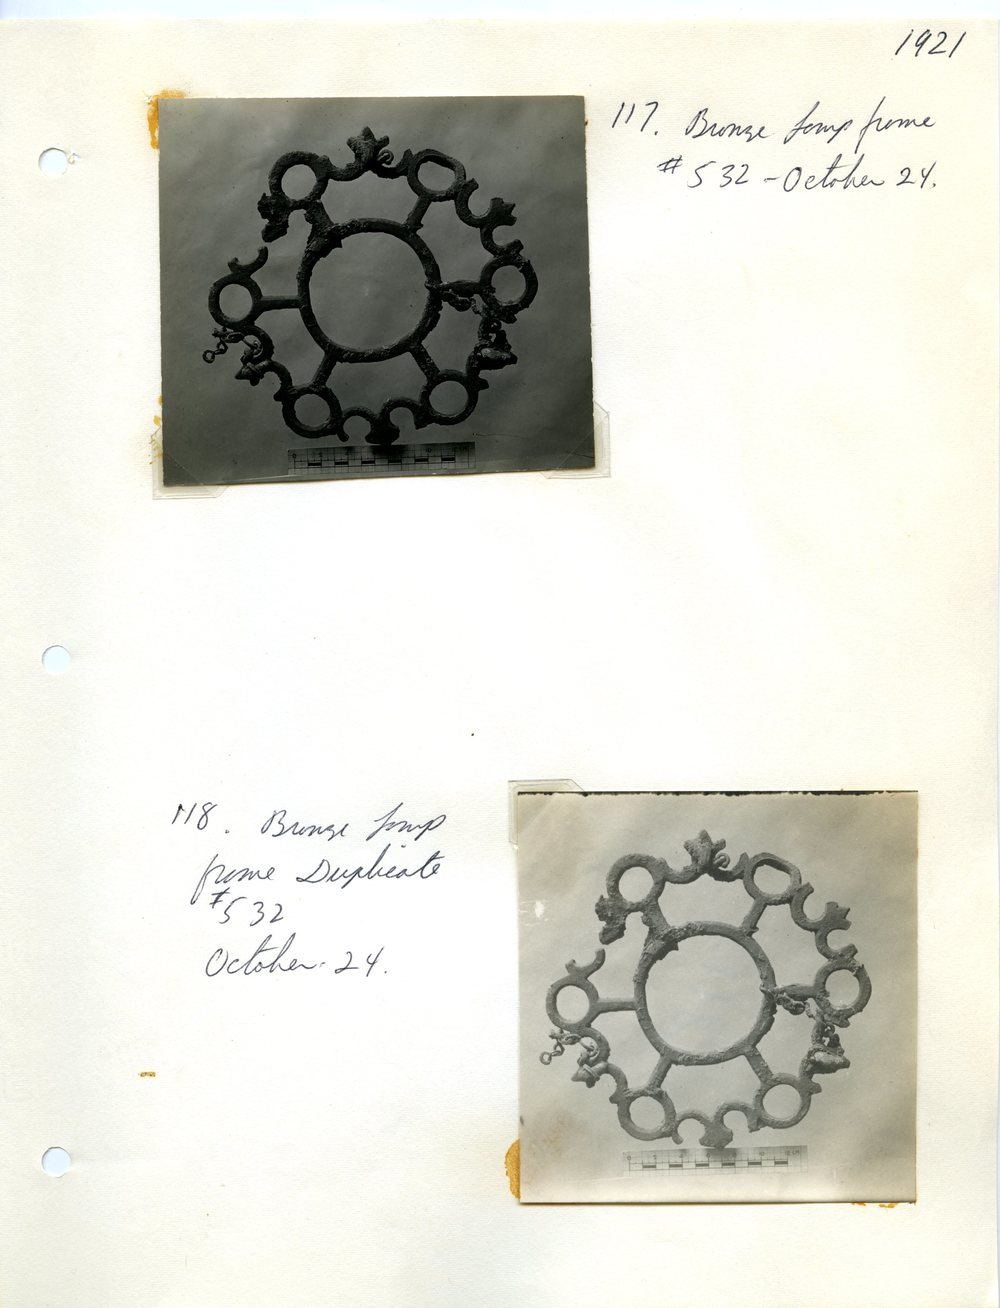 Excavation Notes and Photographs of Two Polycandela